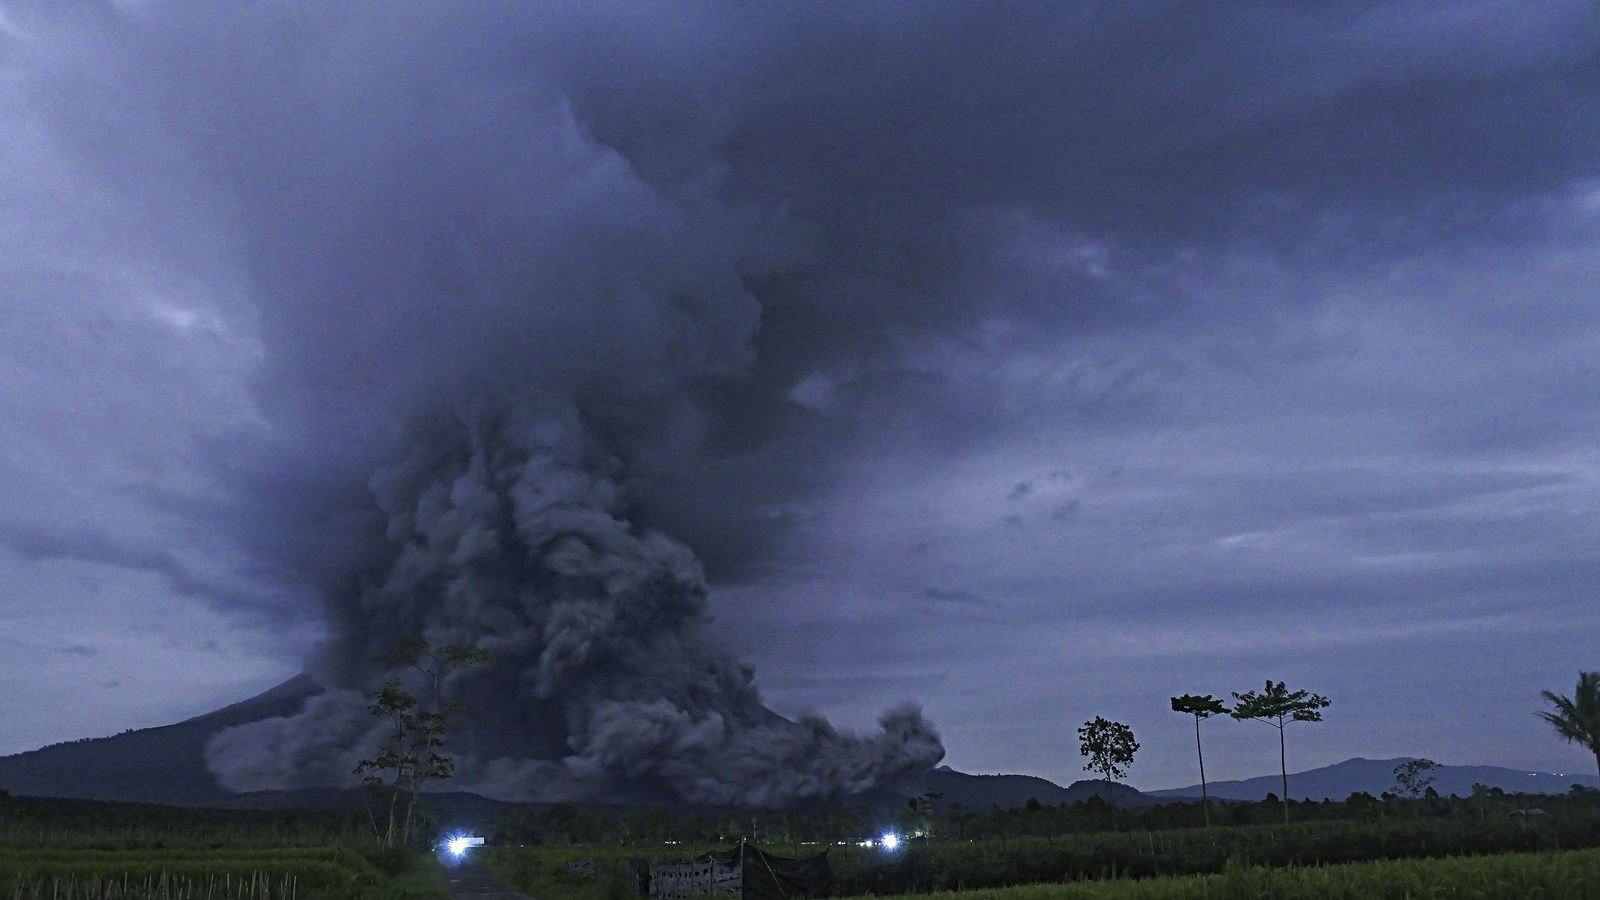 Semeru - pyroclastic flows reach the base of the stratovolcano this December 1 - CNN Indonesia image